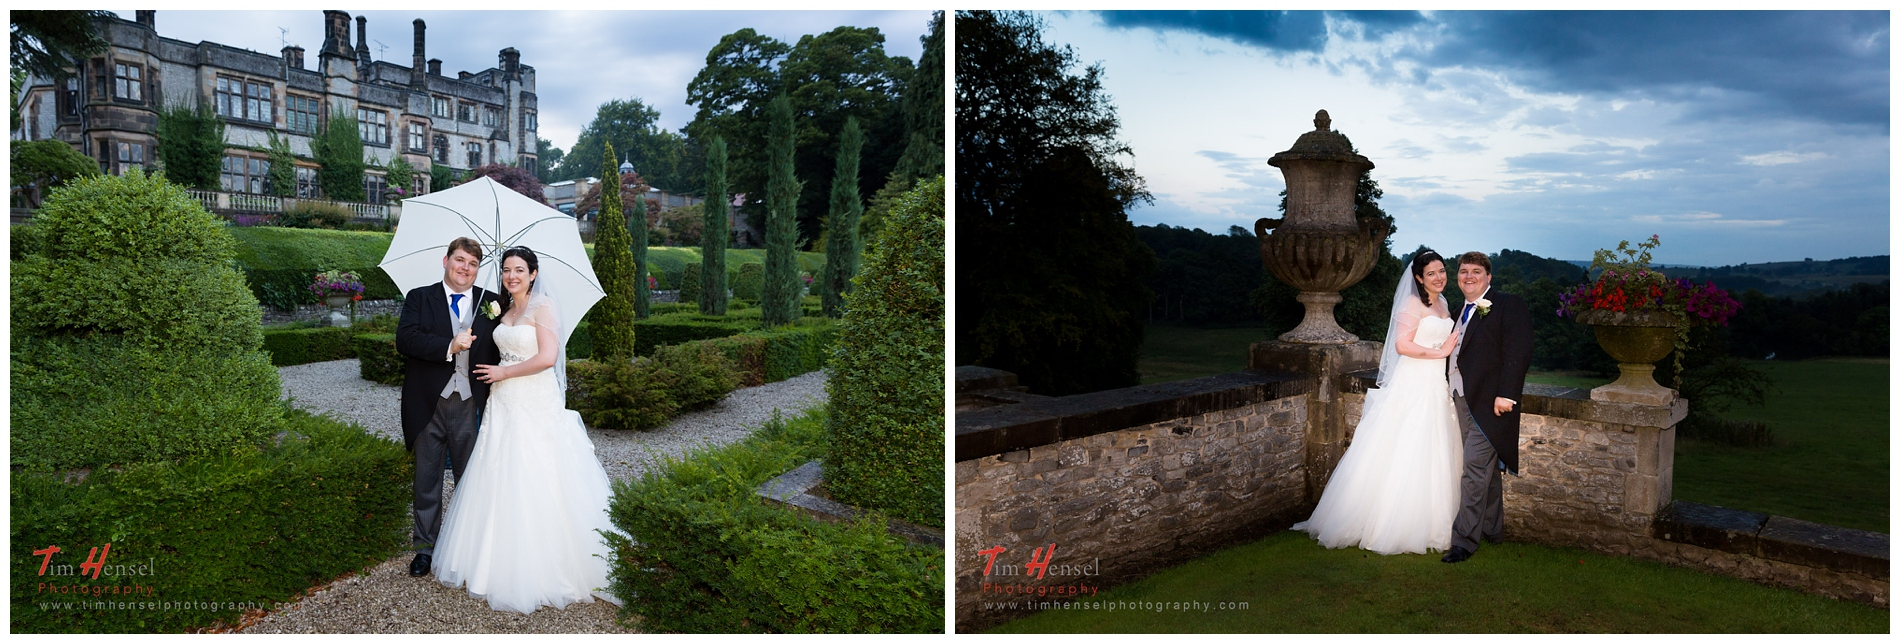 classic wedding photos at thornbridge hall